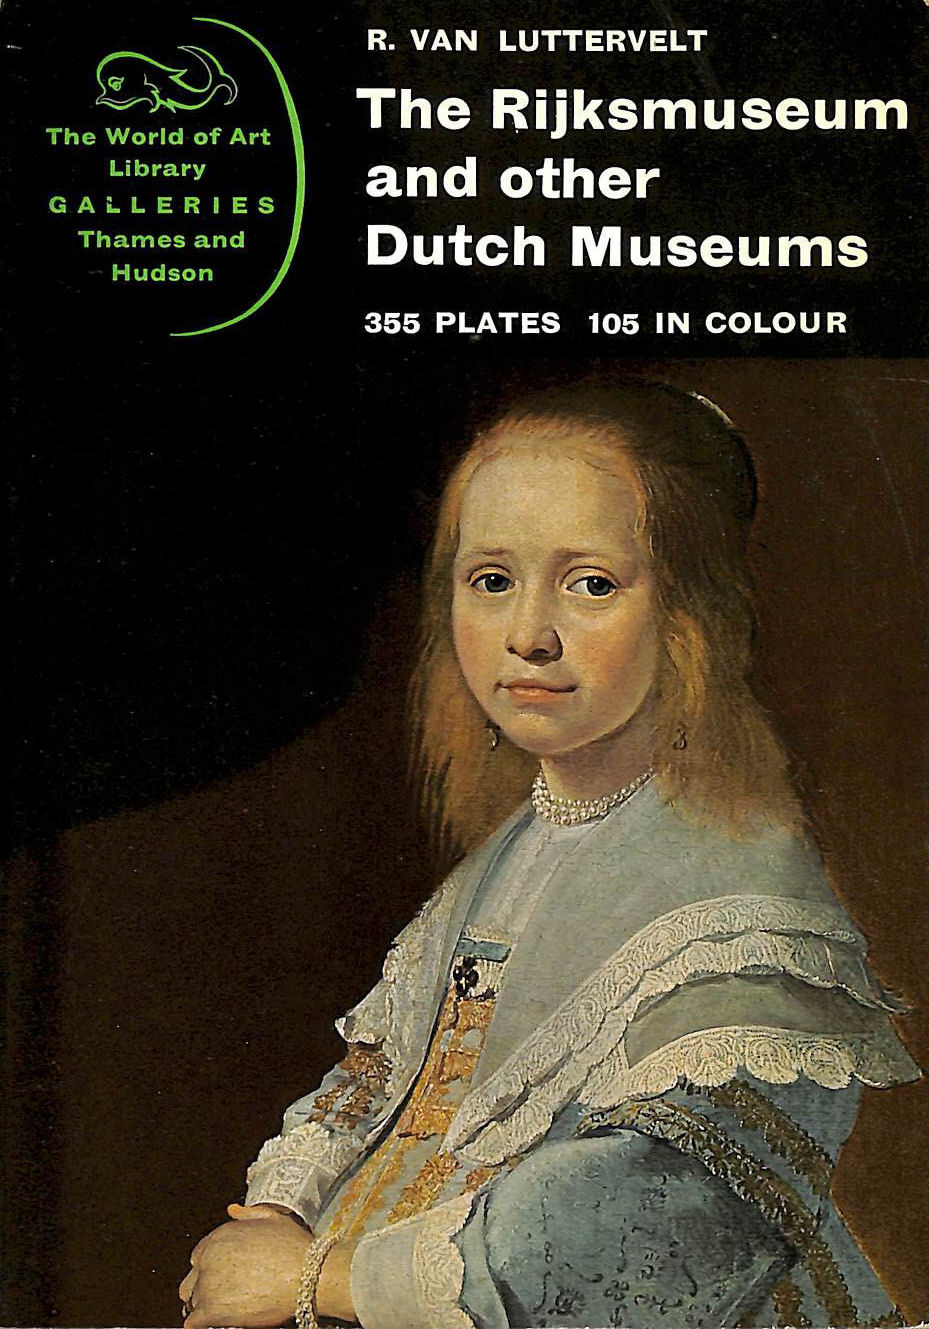 Image for The Rijksmuseum and other Dutch museums (World of art library, galleries series)